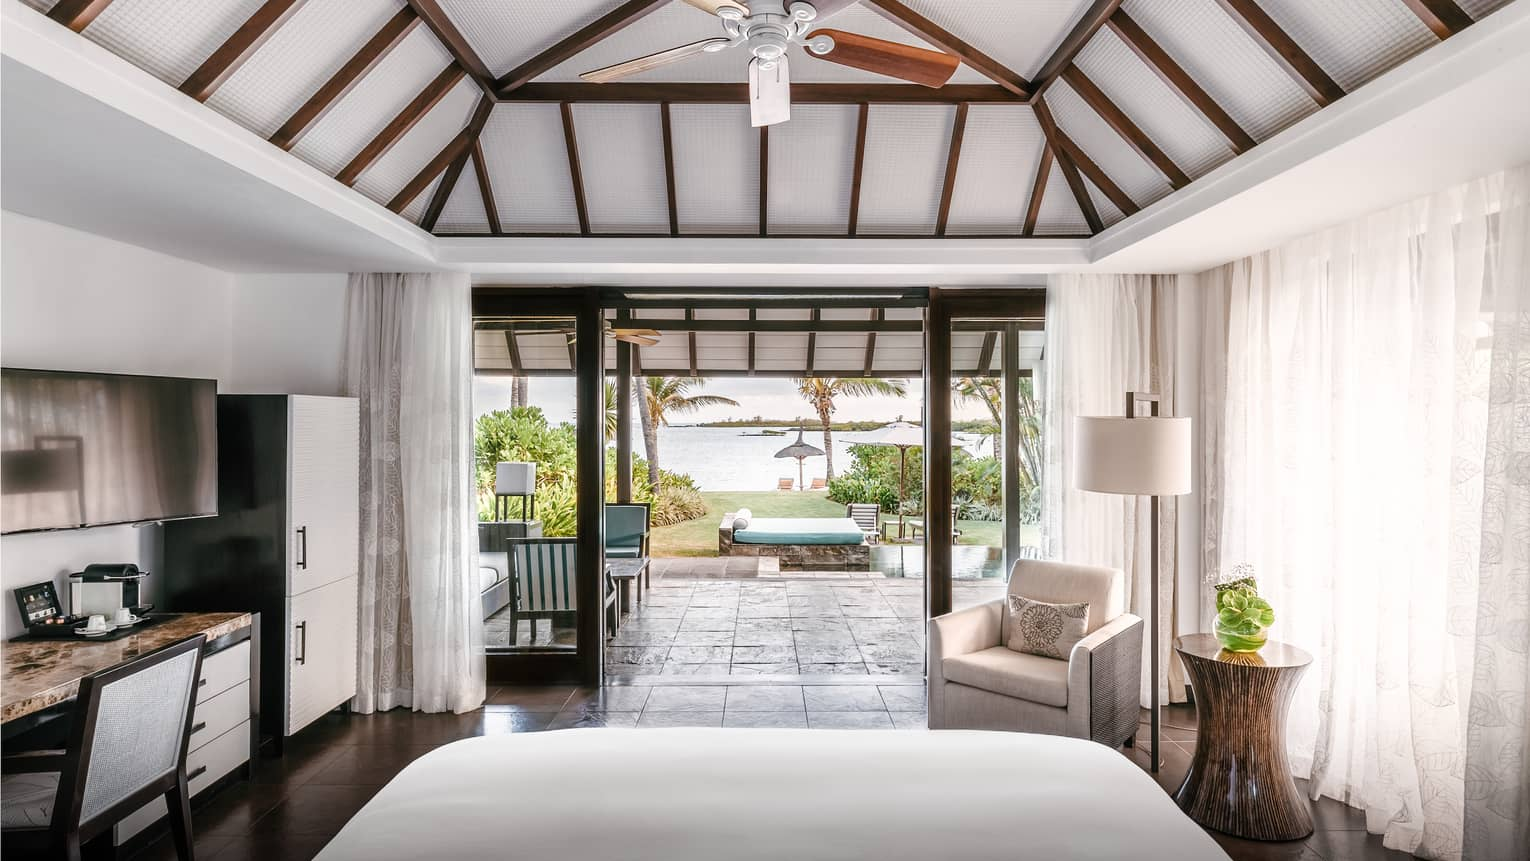 One-bedroom villa with vaulted white and wood-beamed ceiling, white bed and views out to lagoon